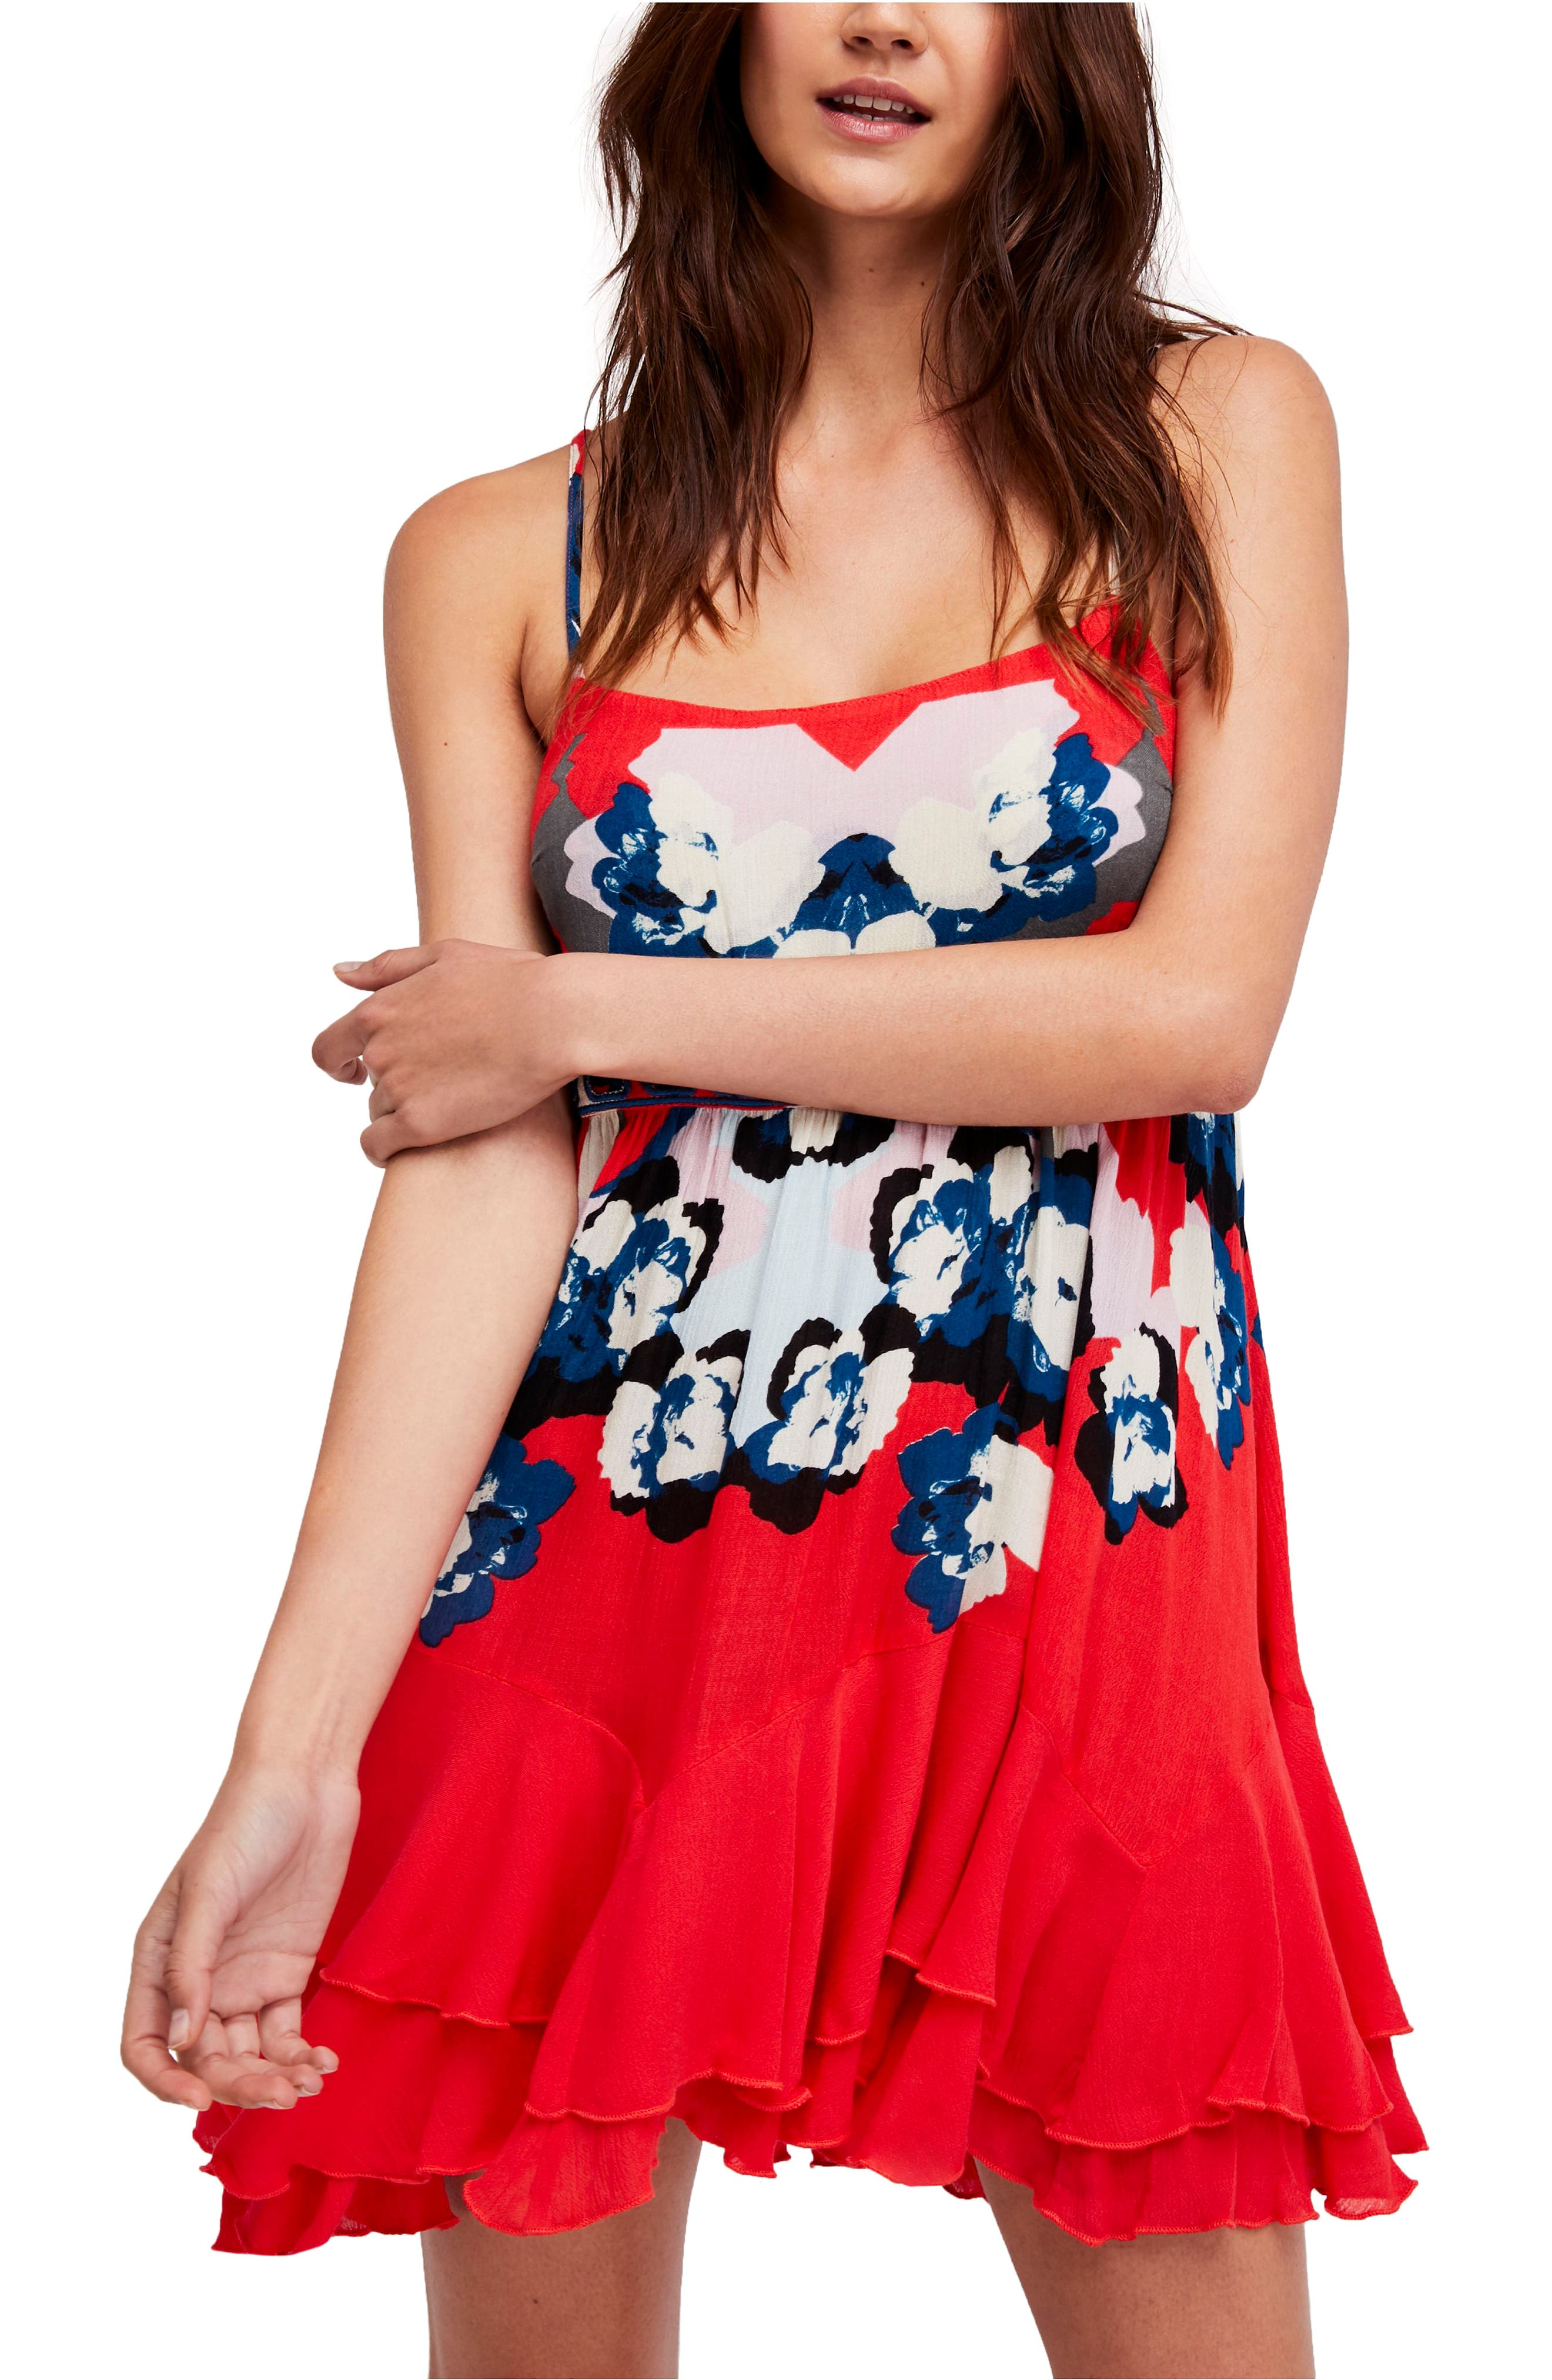 Sweet Lucy Slipdress,                             Main thumbnail 1, color,                             Red